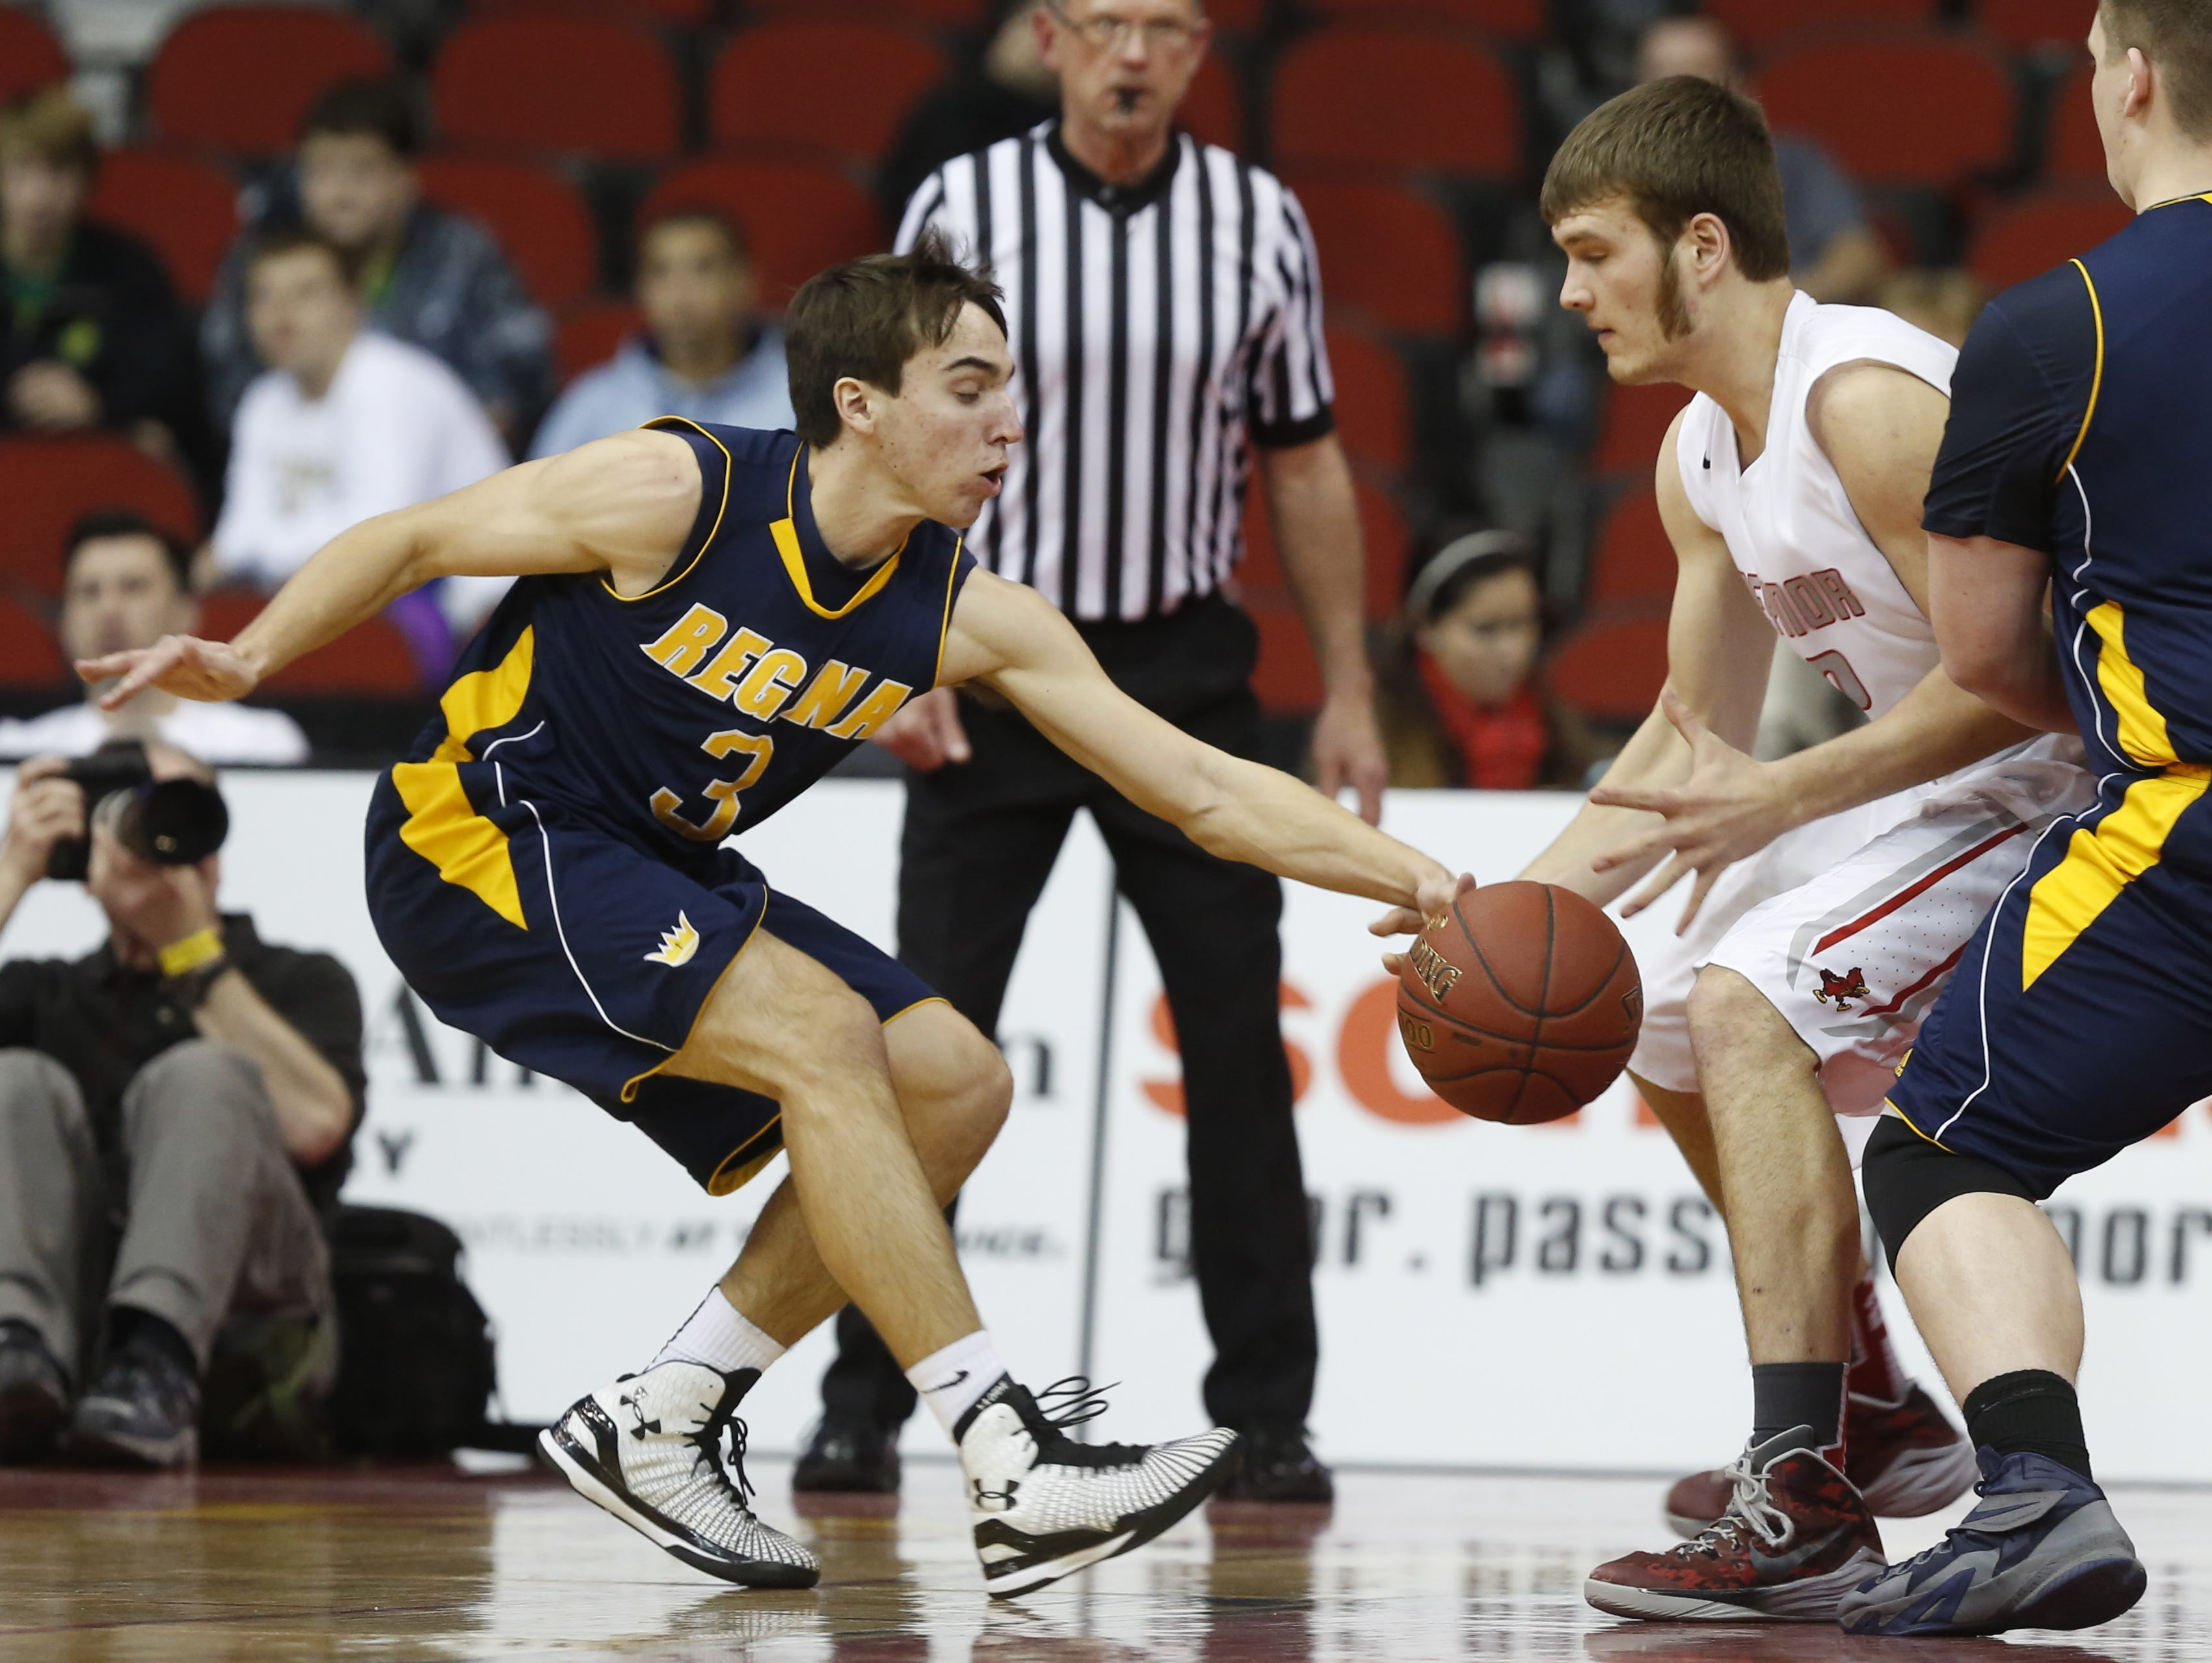 Regina's Nathan Stenger swipes the ball away from Treynor's Jacob Flathers Friday, March 13, 2015, at 2A Boys State Basketball Tournament championship game at Wells Fargo Arena in Des Moines.